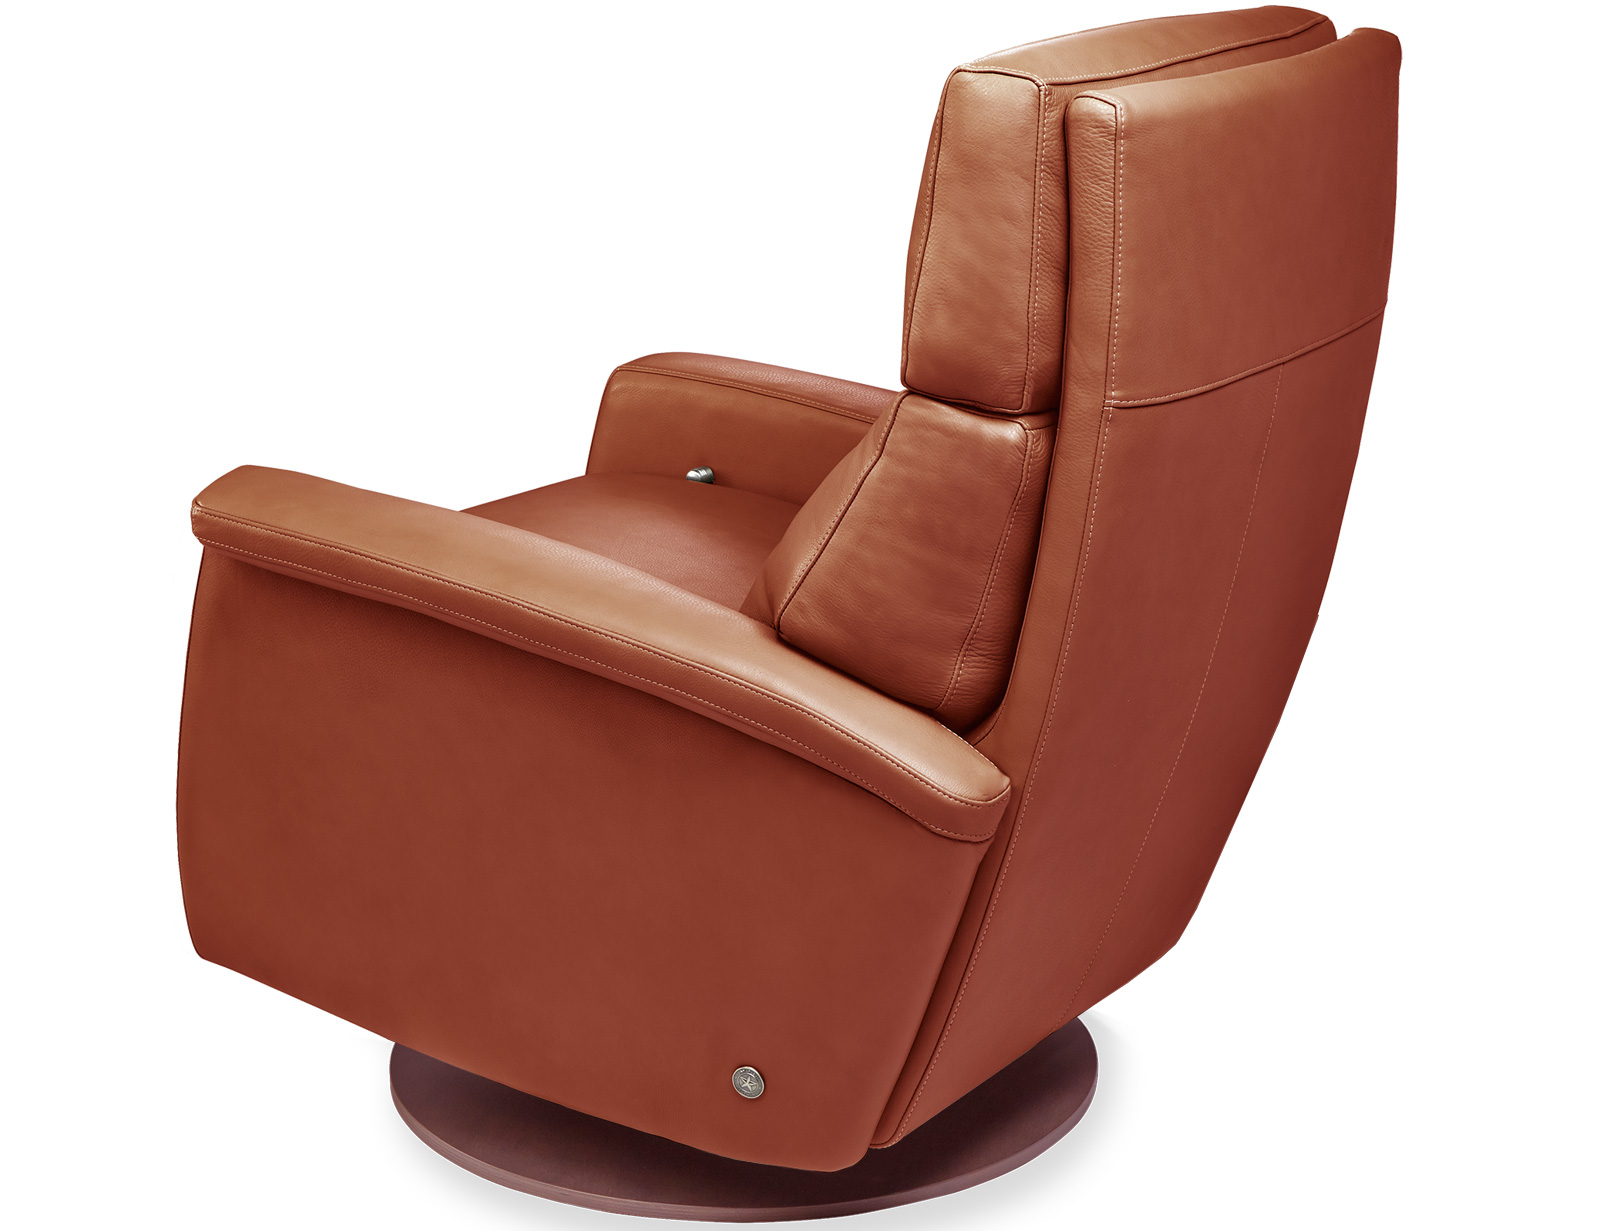 American Leather Felix Comfort Recliner available with swivel base